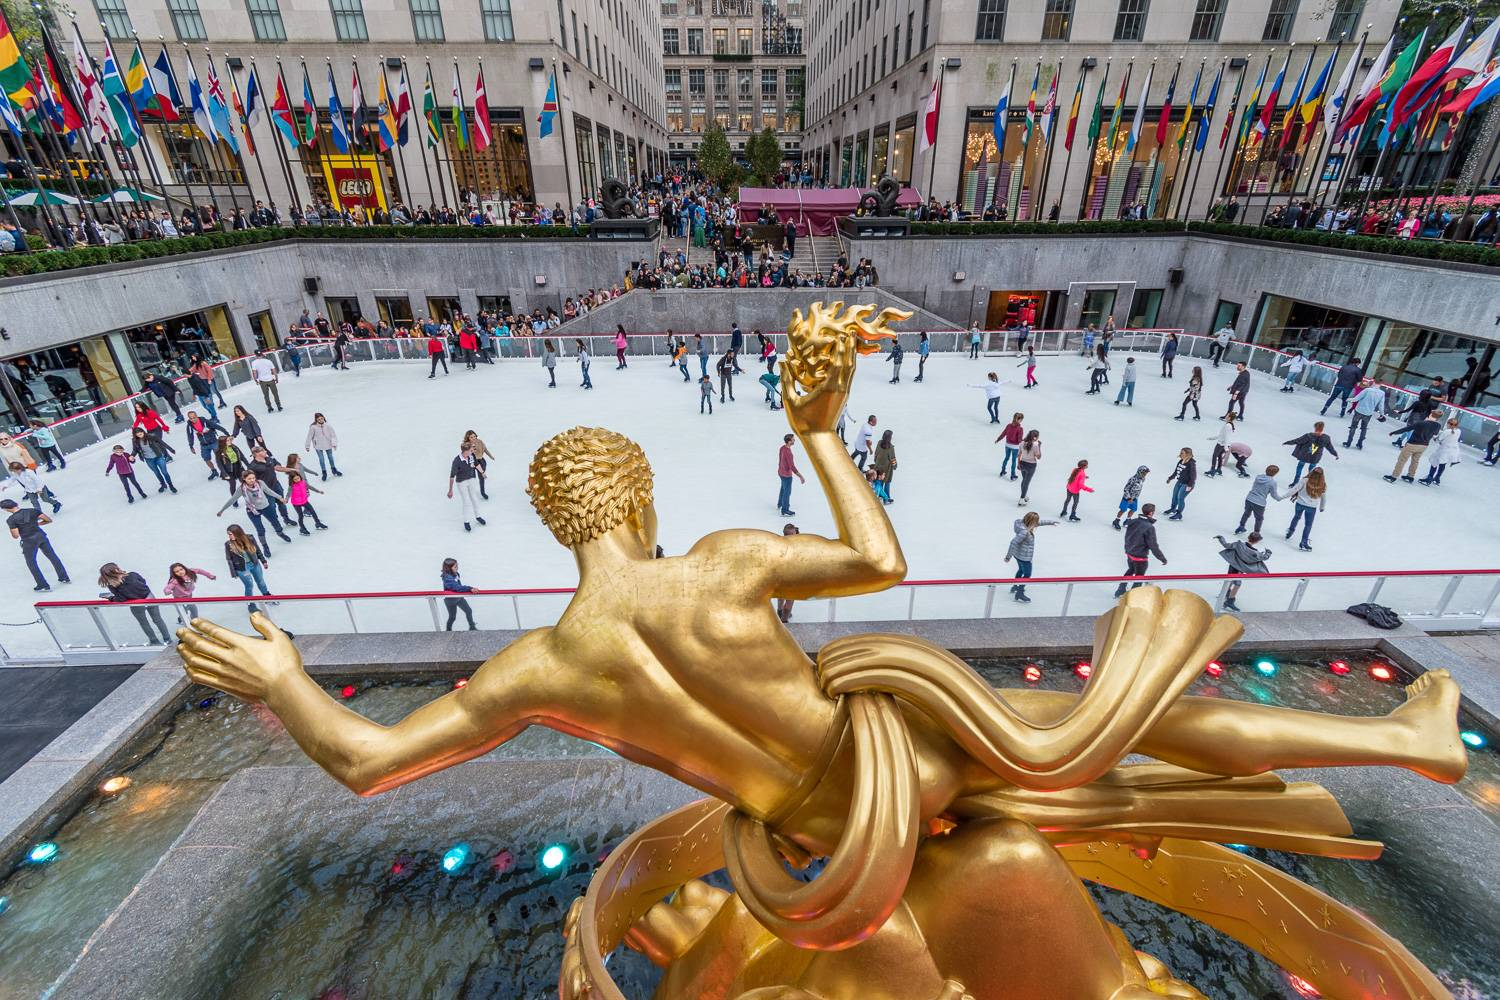 Image of Rockefeller Center ice skating rink with golden statue, international flags and people skating (Photo Credit: Shutterstock)